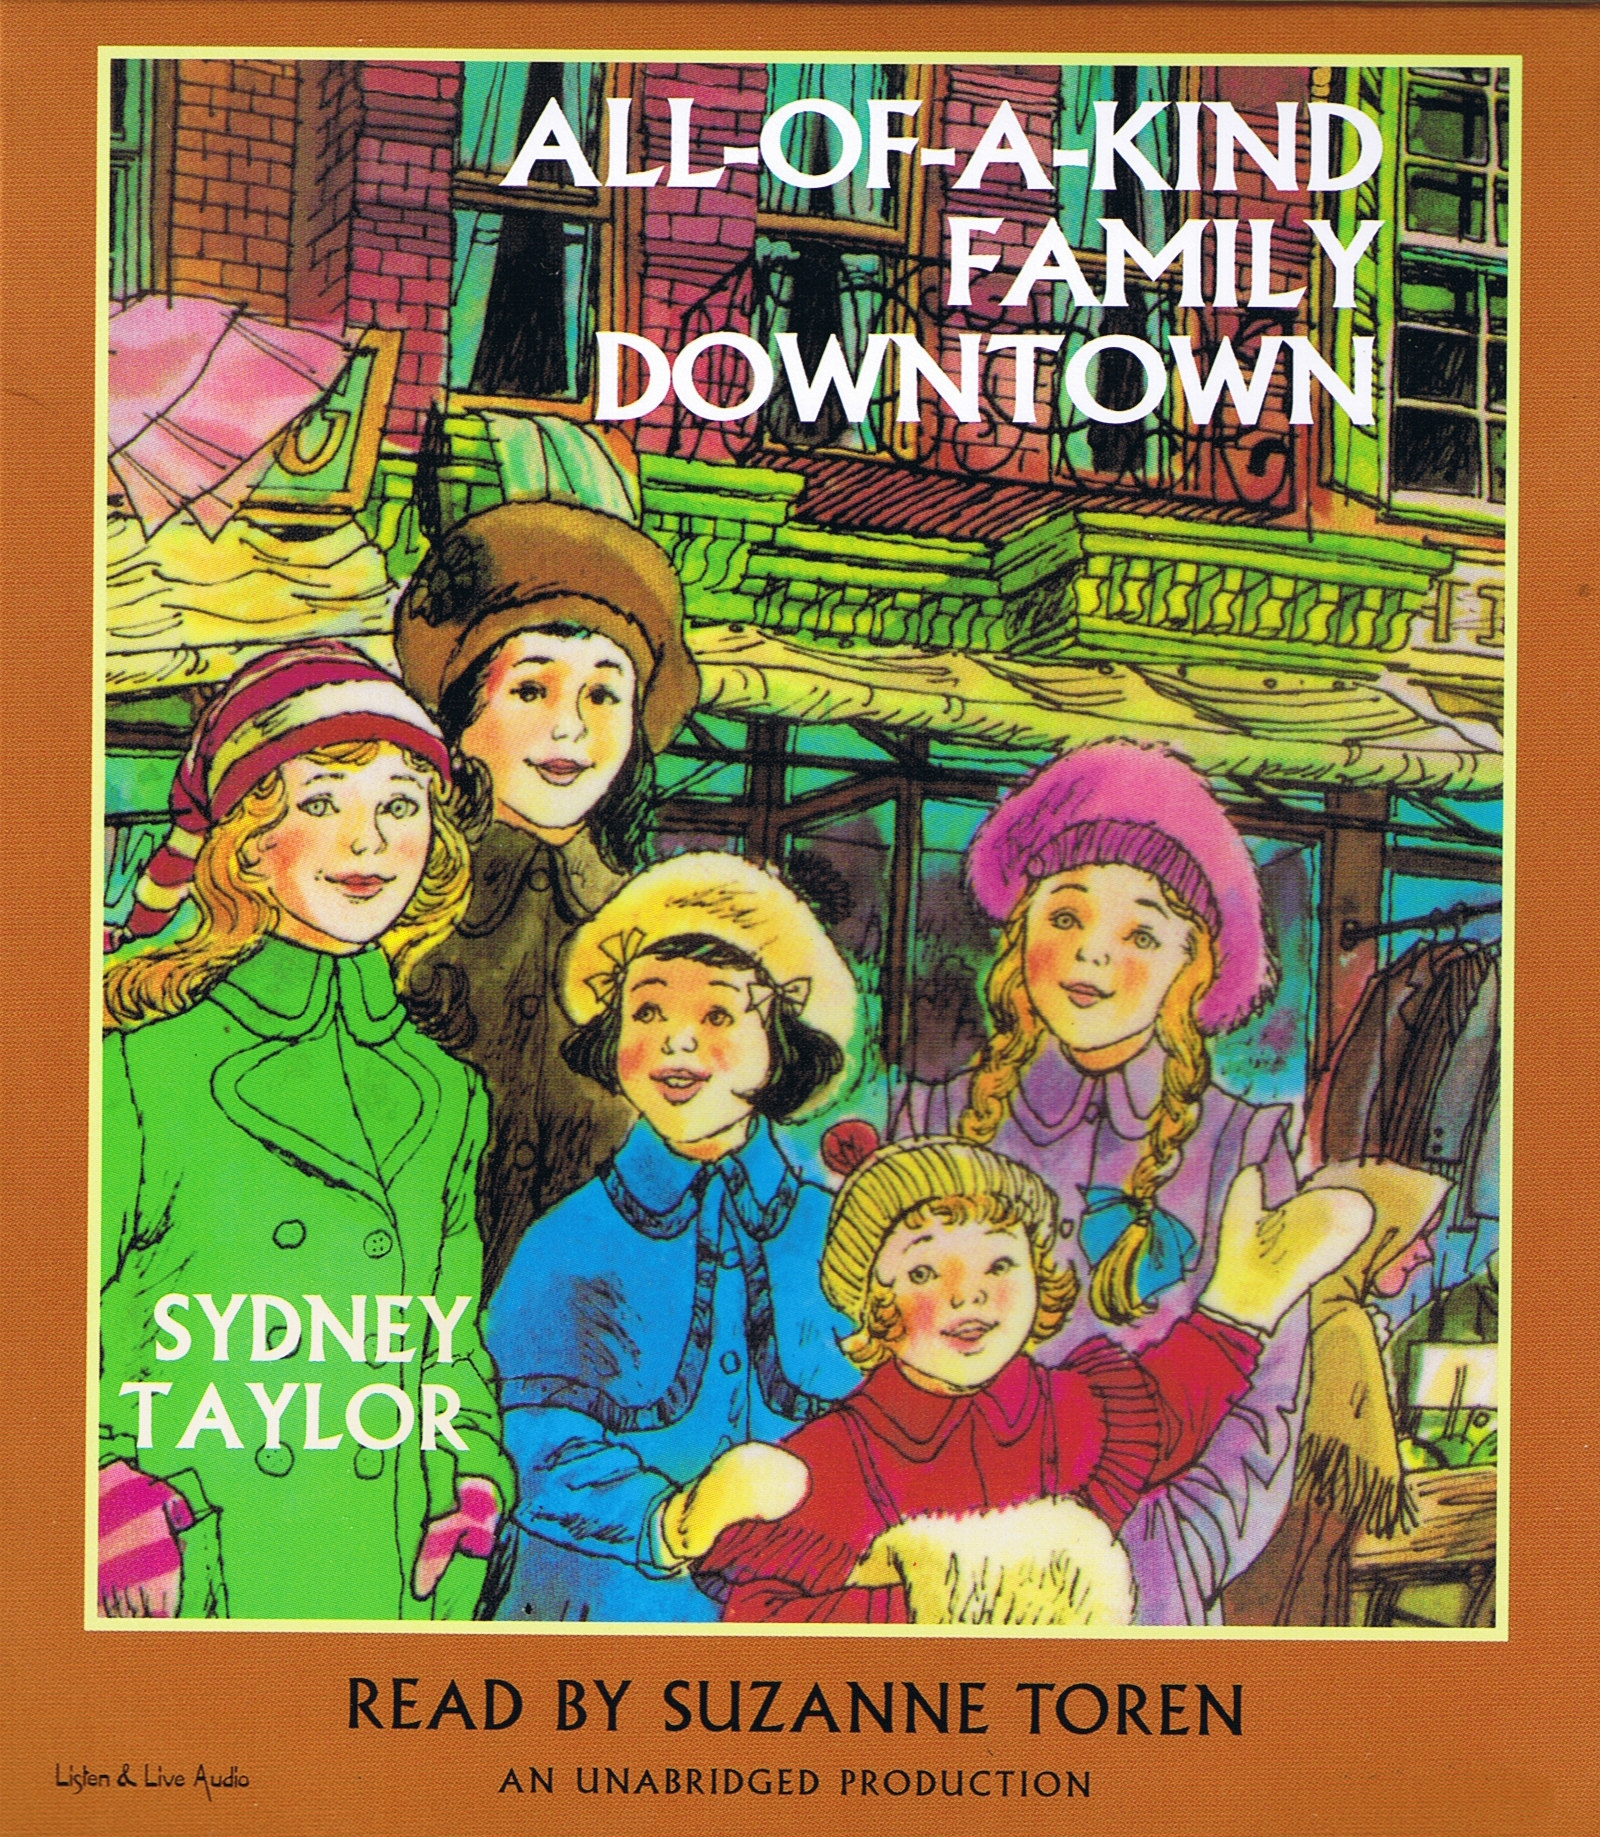 All-Of-A-Kind Family Downtown [DD]